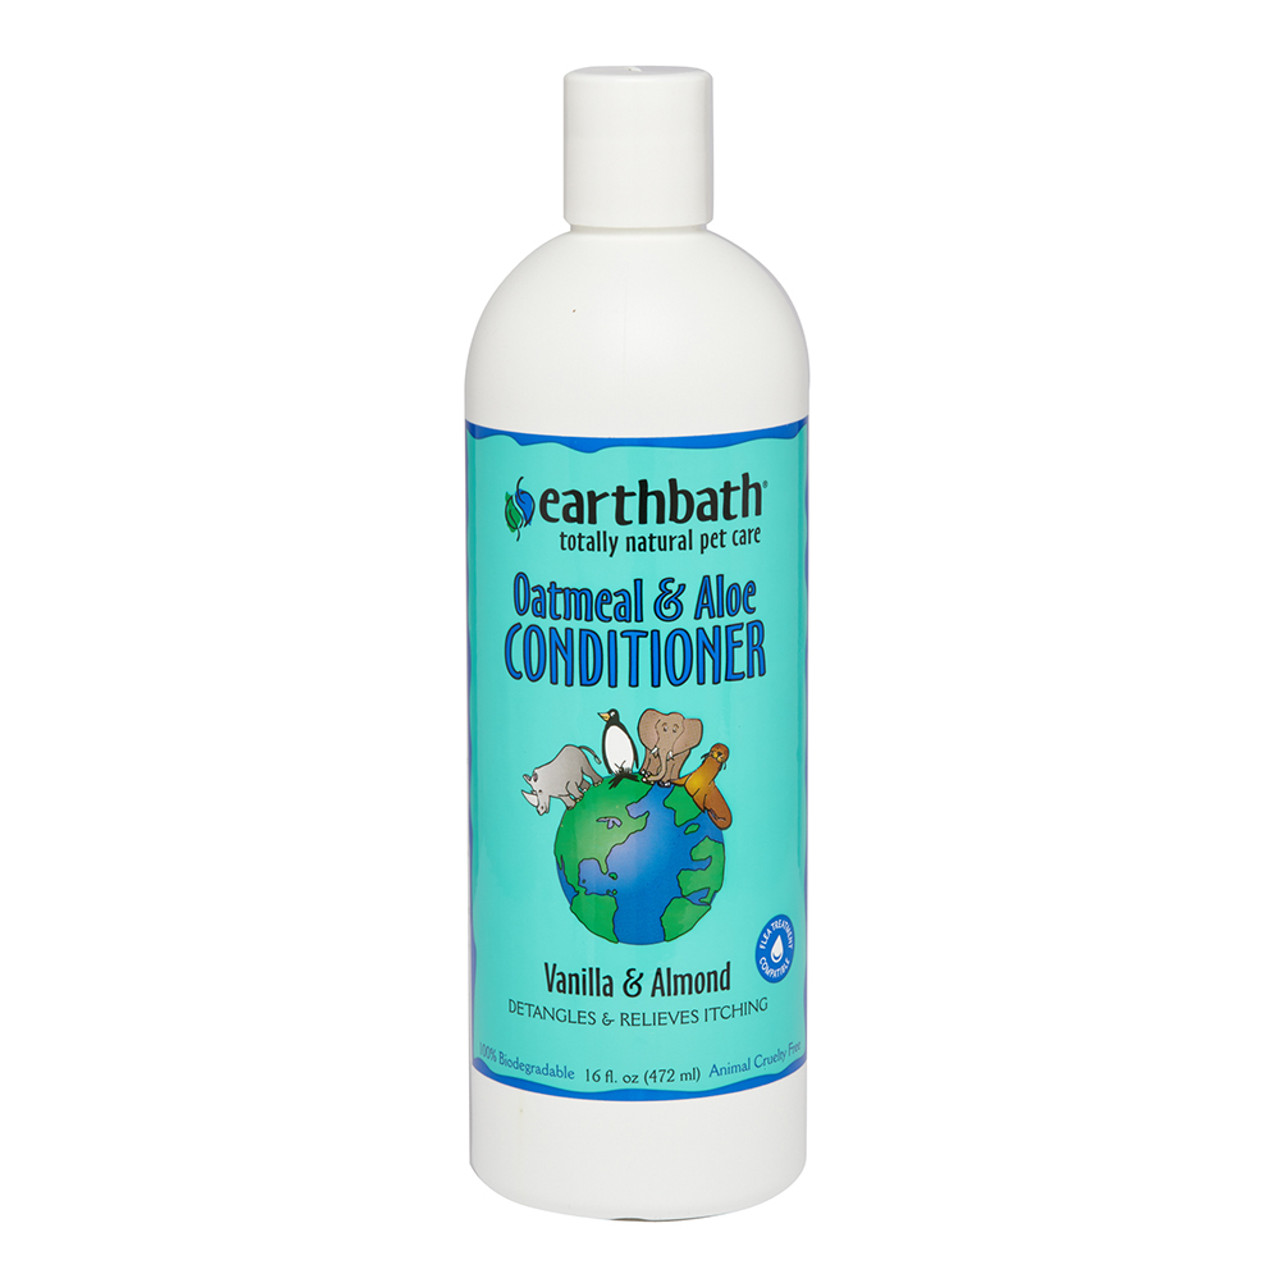 Earthbath Oatmeal & Aloe Conditioner for Pets